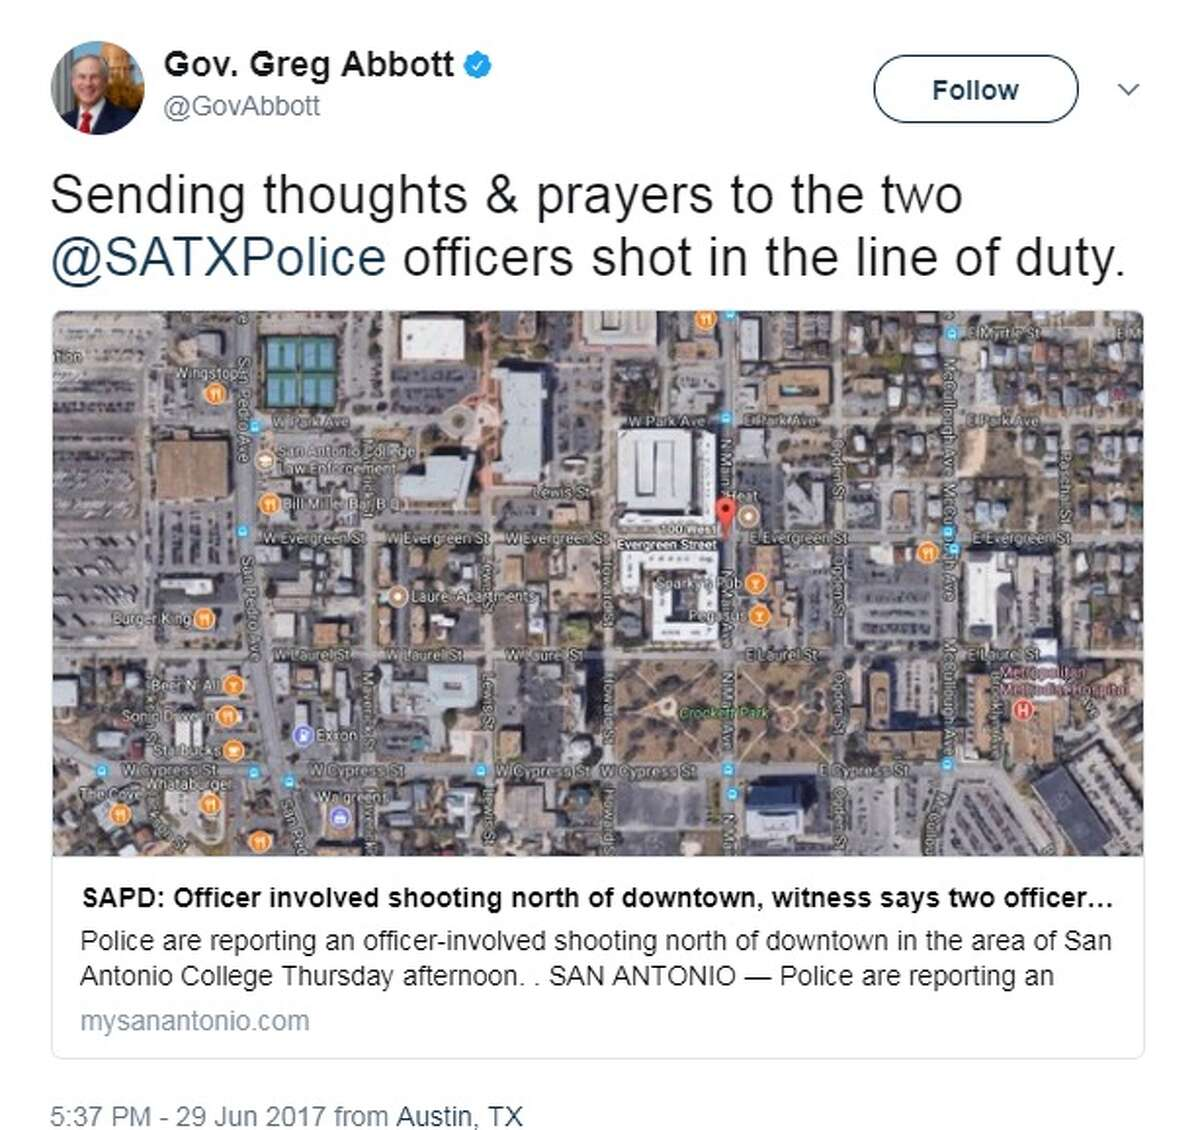 """Governor Greg Abbott: """"Sending thoughts & prayers to the two @SATXPolice officers shot in the line of duty."""""""